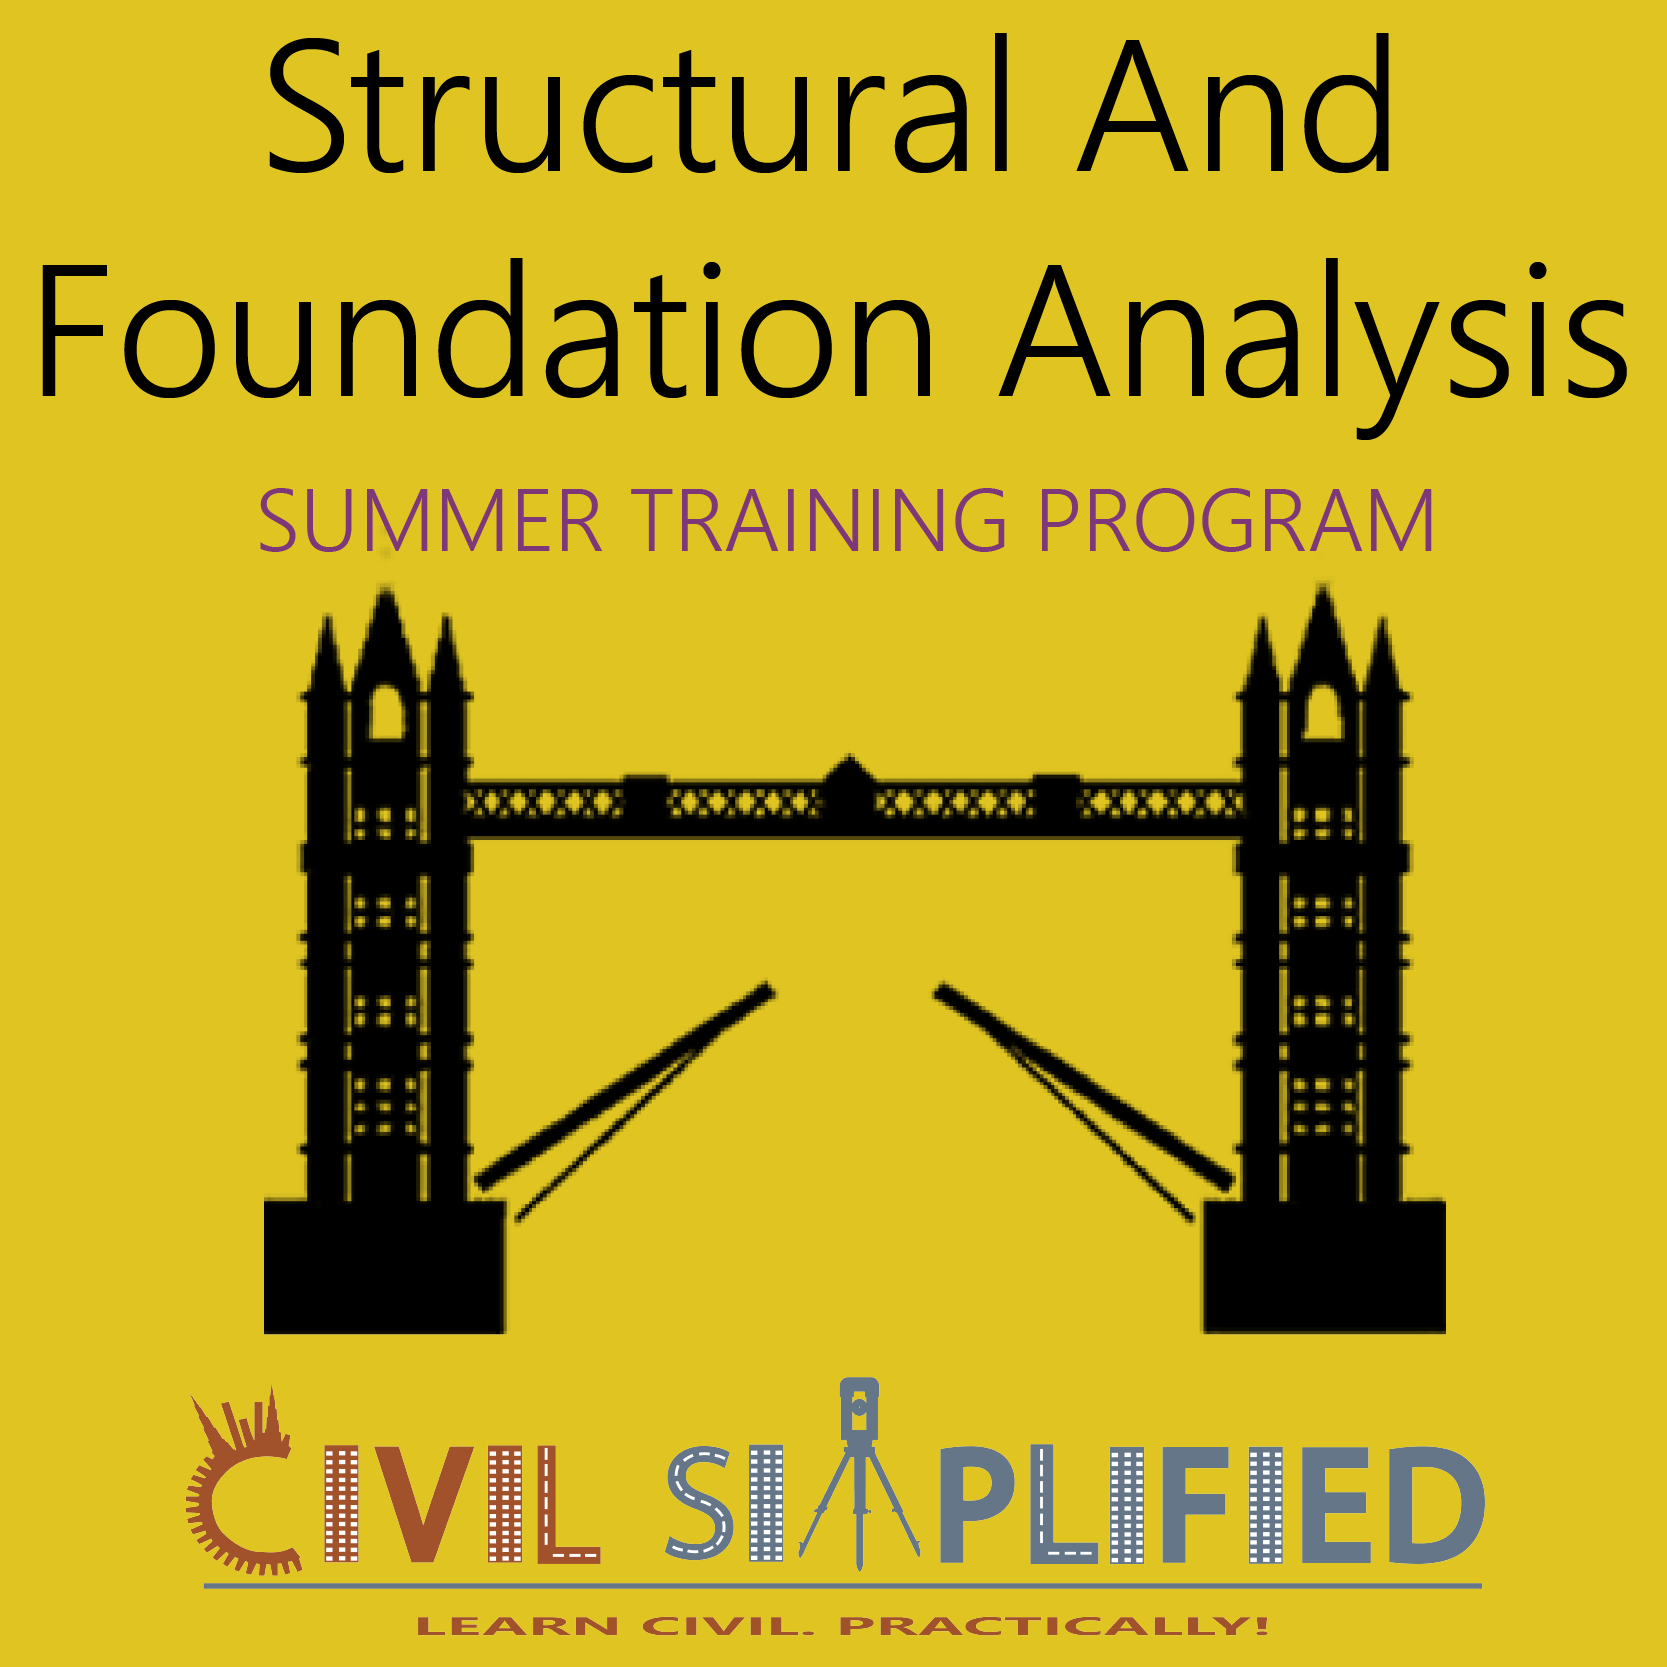 Summer Training Program in Civil Engineering - Structural and Foundation Analysis  at Skyfi Labs Center, Gandhipuram Workshop